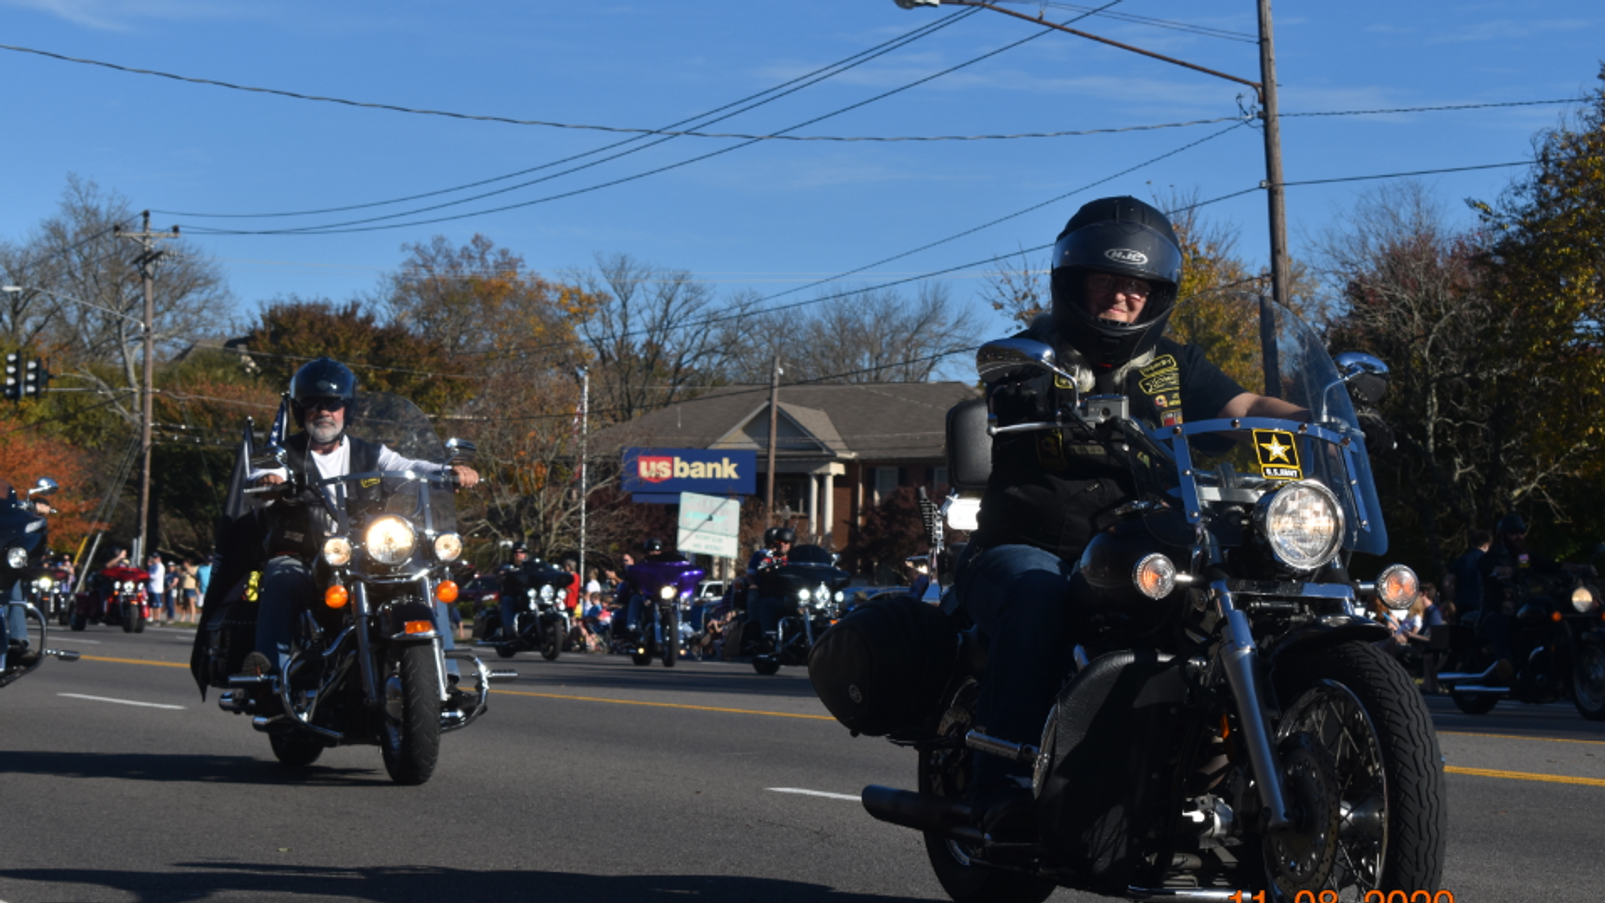 2020 Hendersonville Veterans Day Parade led by CVMA TN 18-1